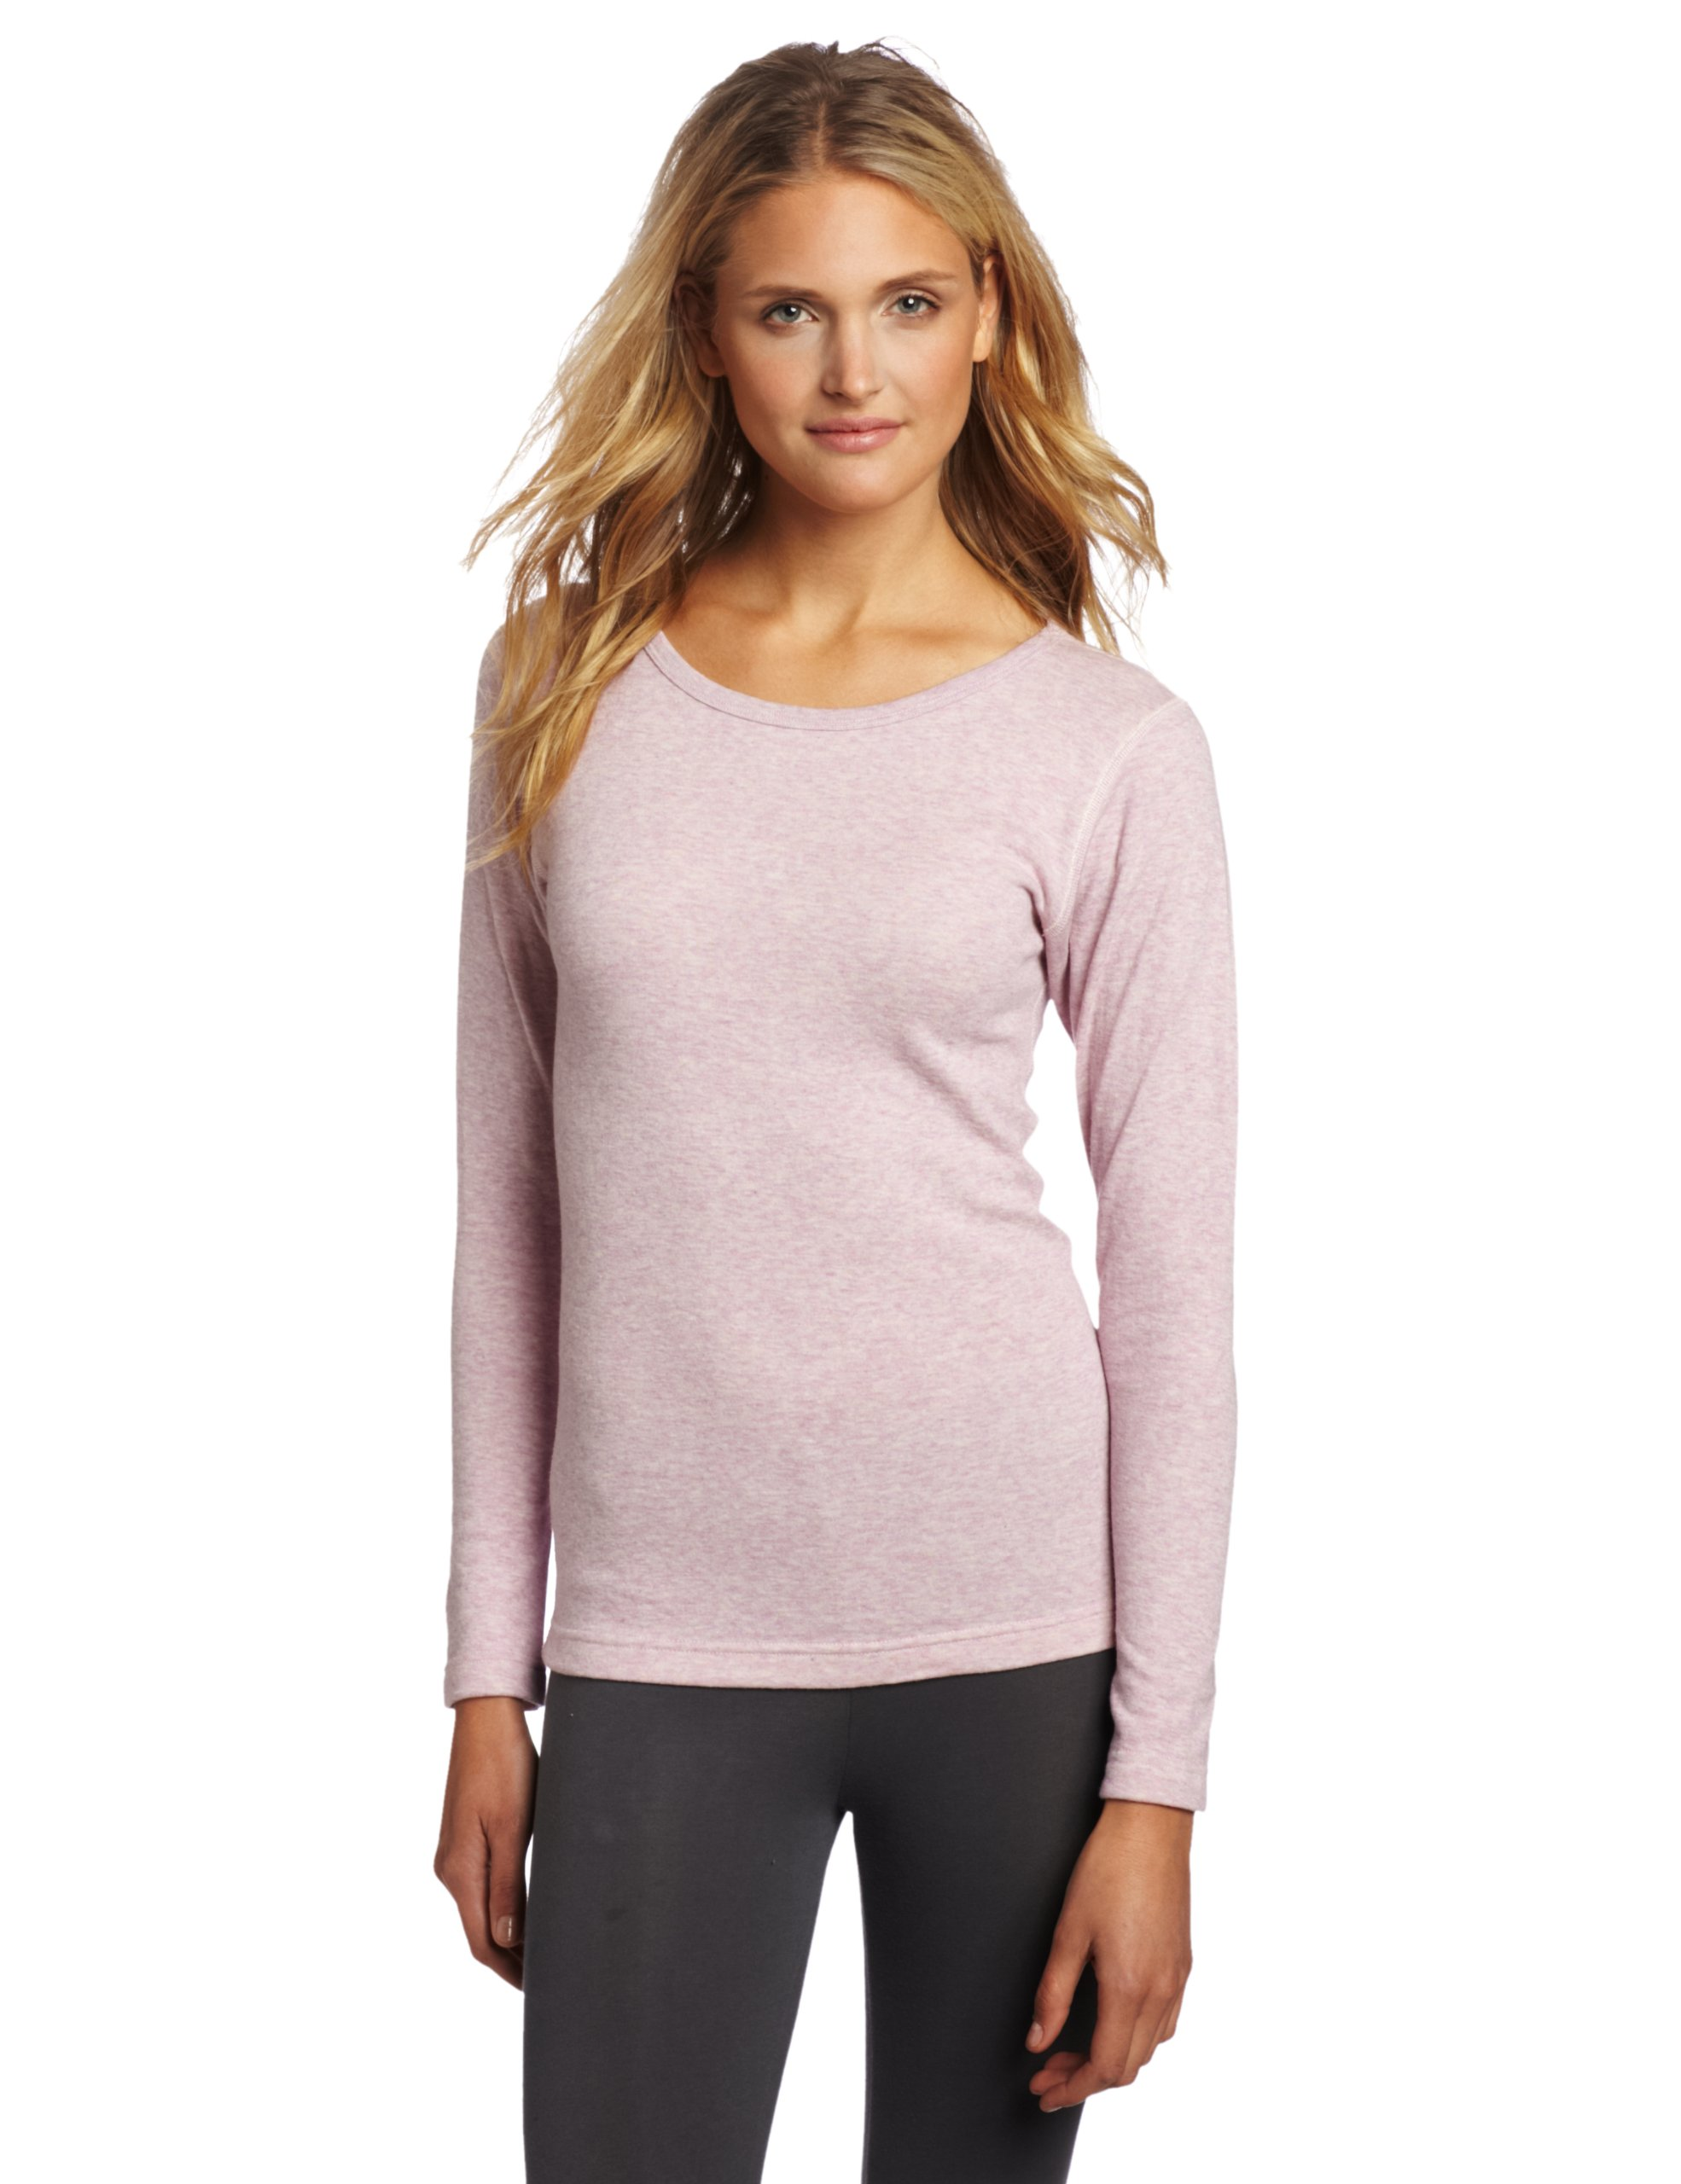 Duofold Women's Mid Weight Double Layer Thermal Shirt, Berry Pink Heather, Medium